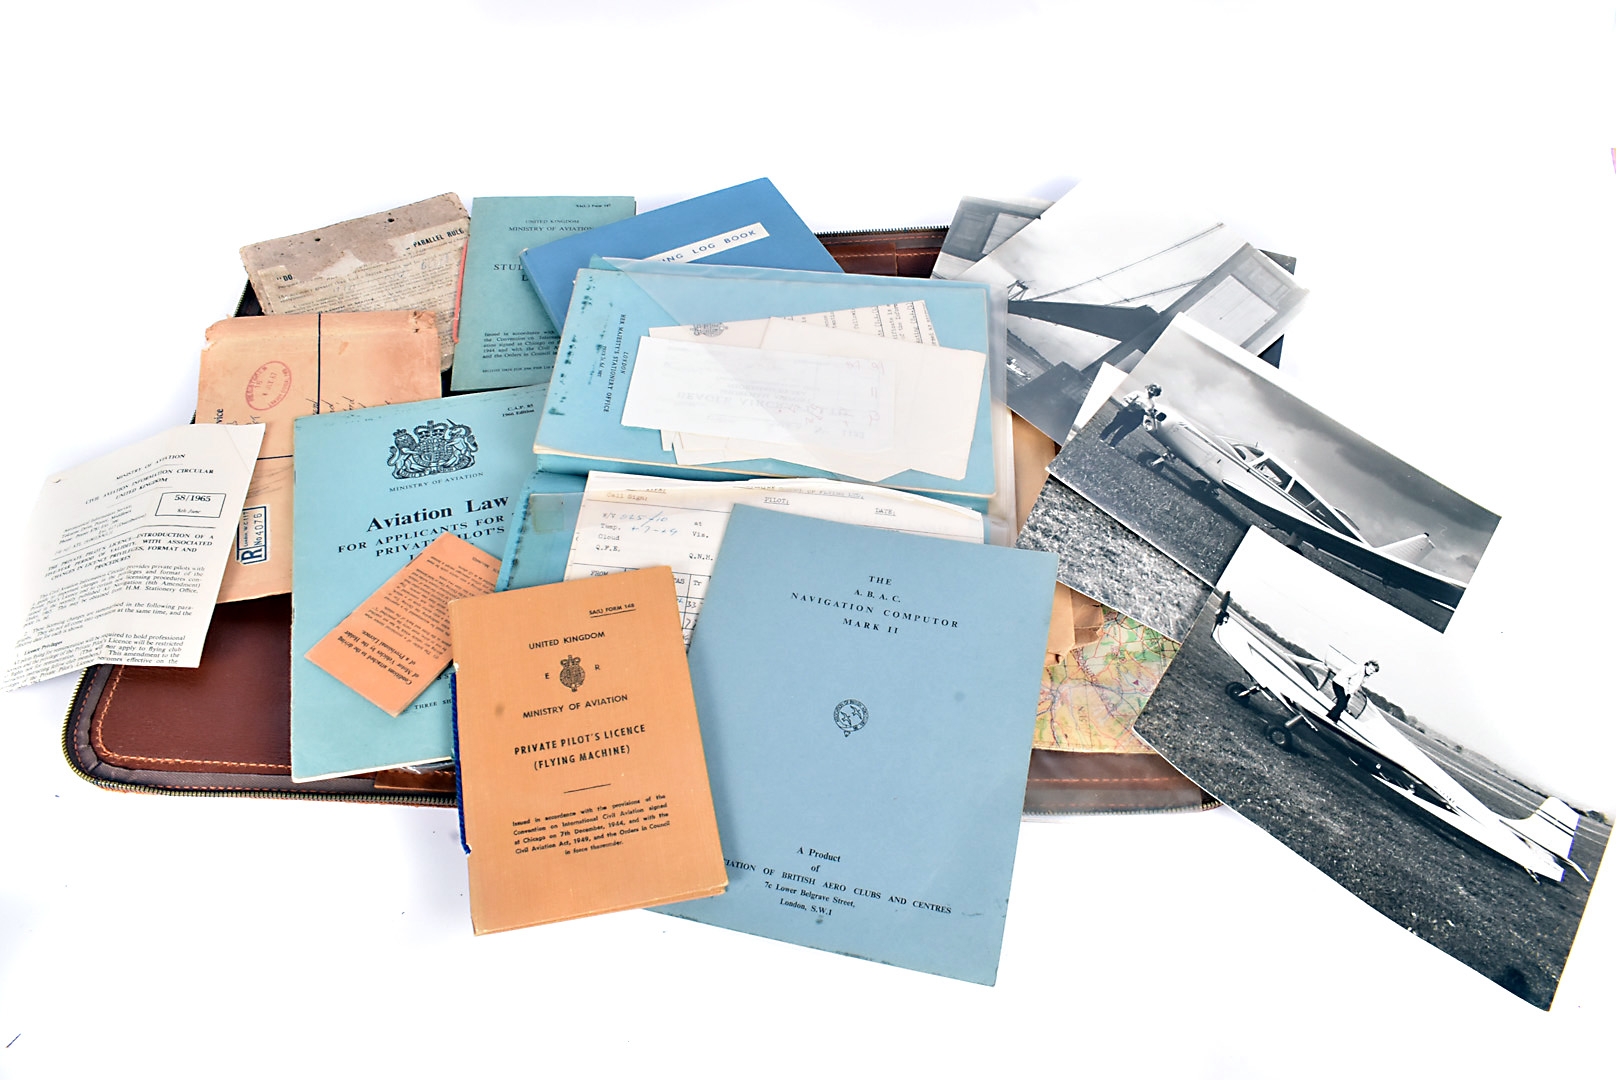 A Female's Private Pilot Licence and Log book, dated to the 1970s, the documents for Private